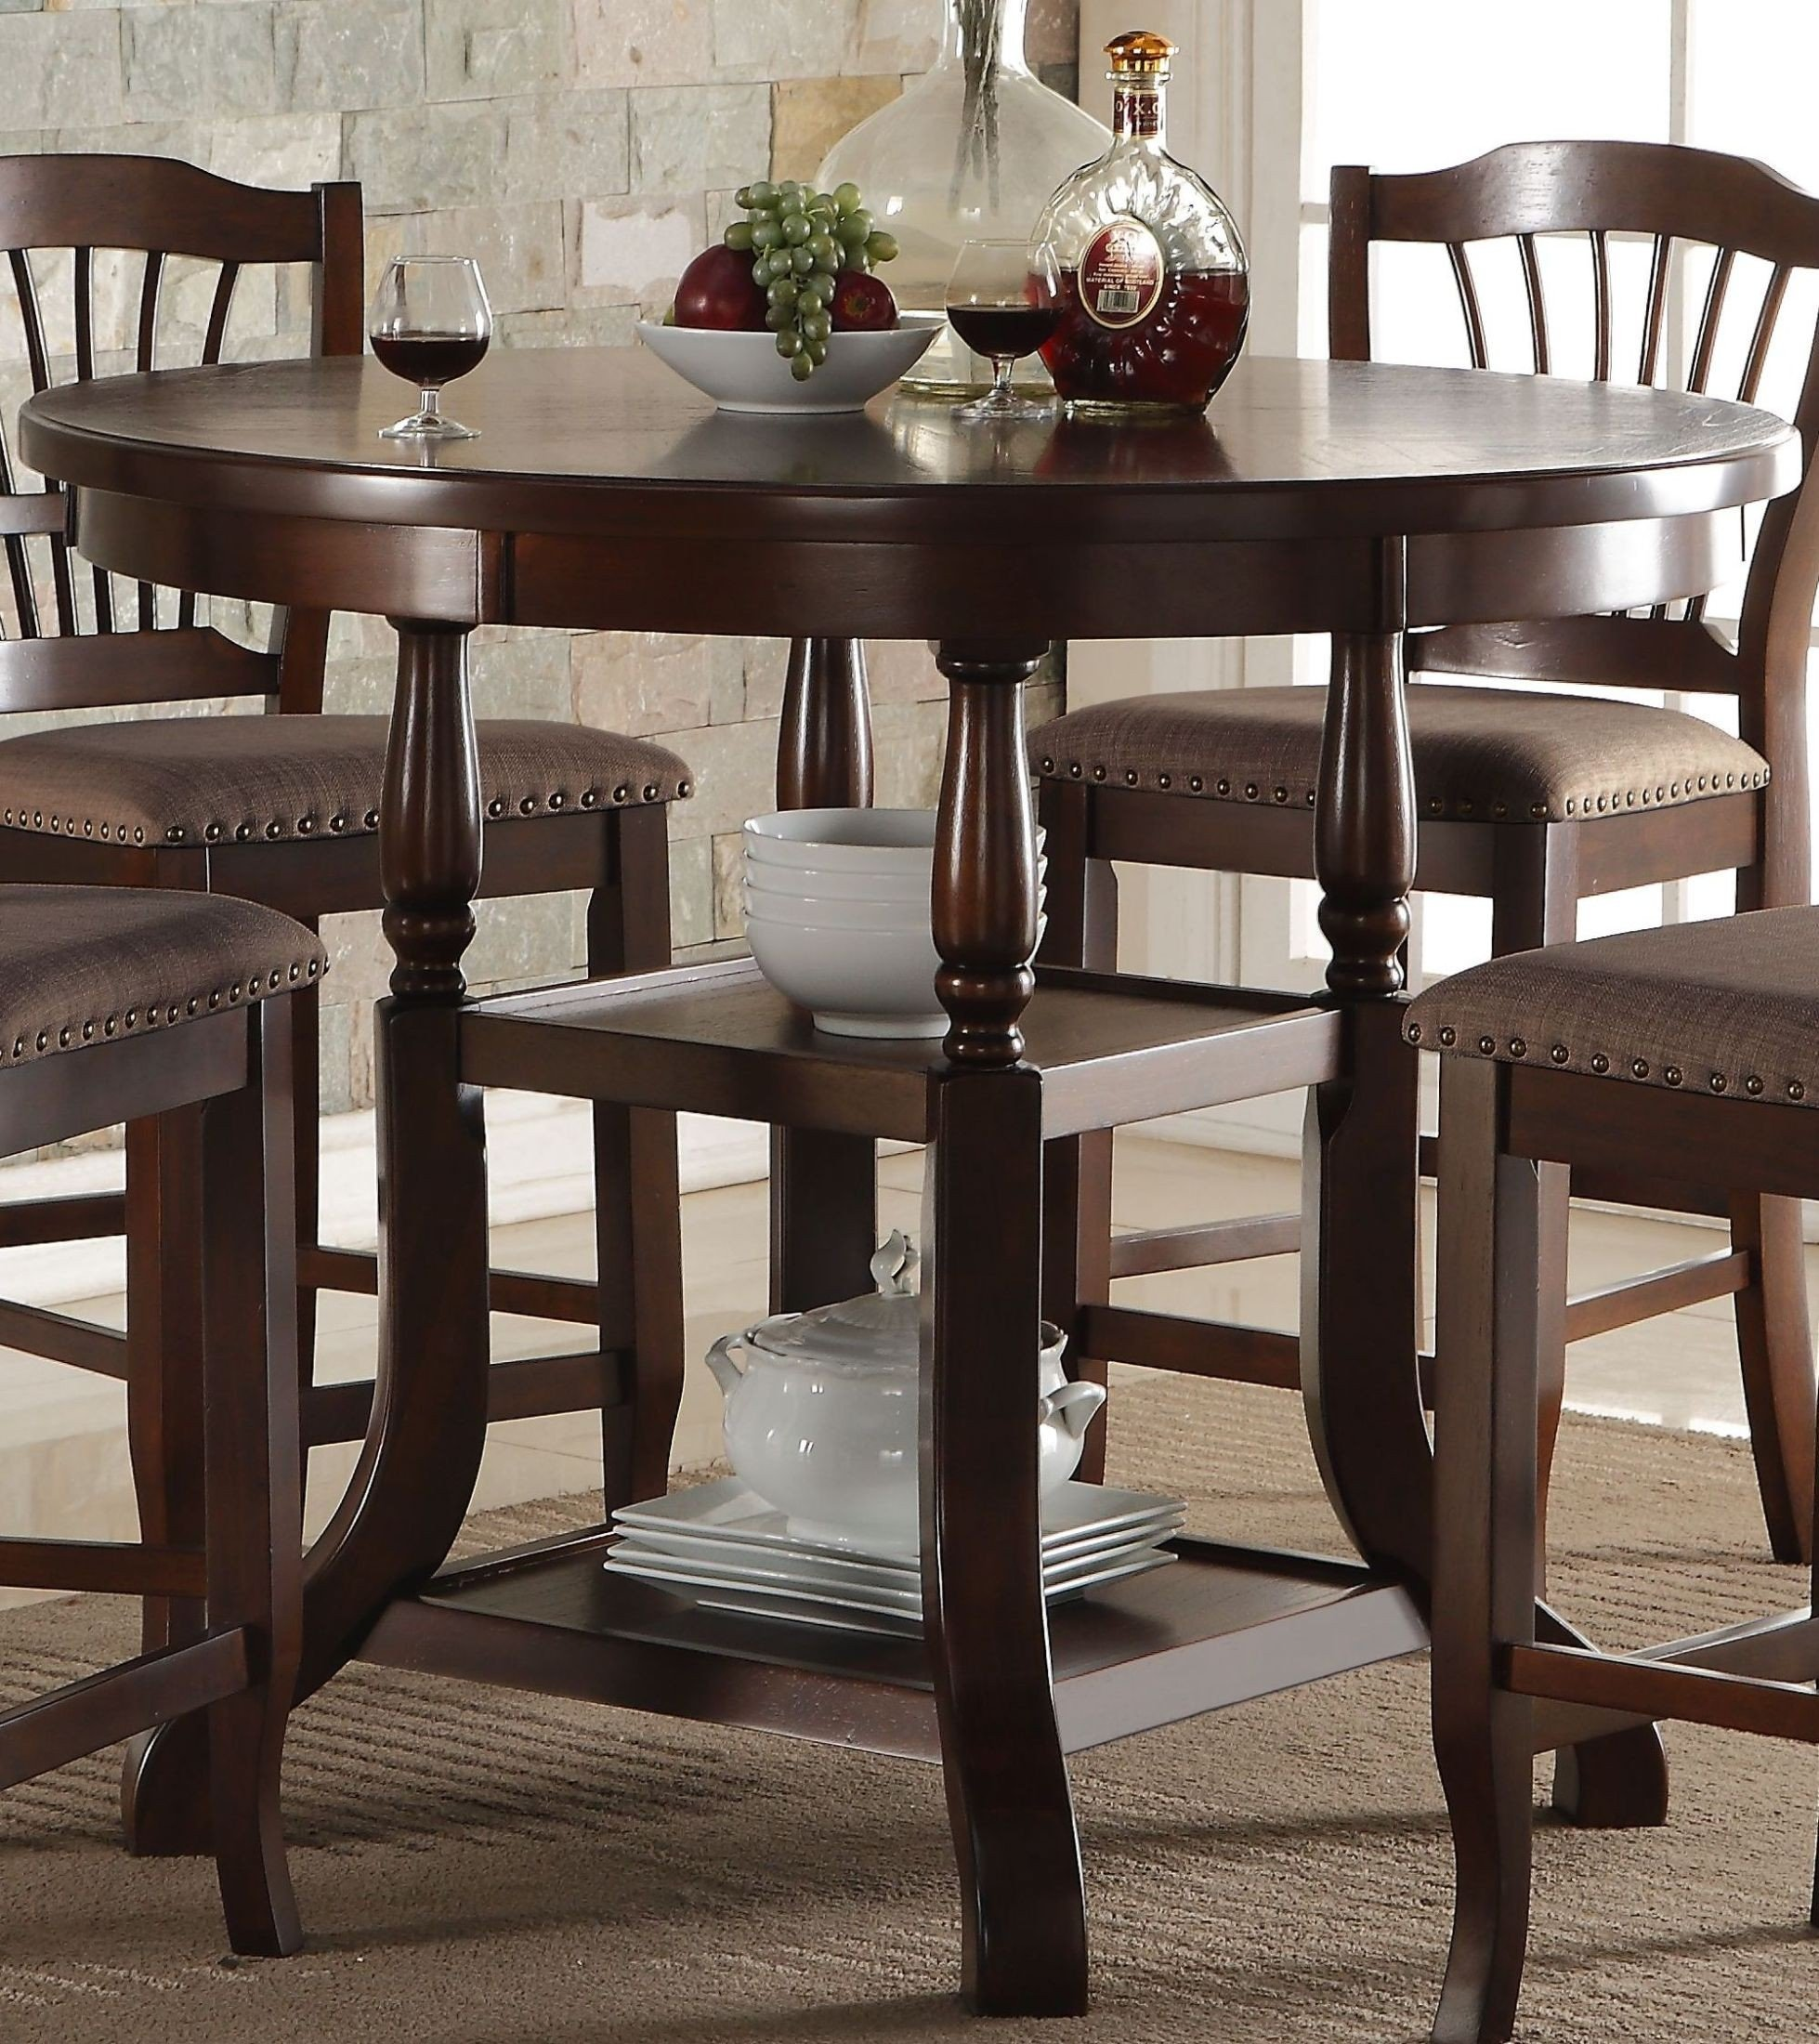 Tremendous Bixby Espresso Round Counter Height Dining Table Gmtry Best Dining Table And Chair Ideas Images Gmtryco